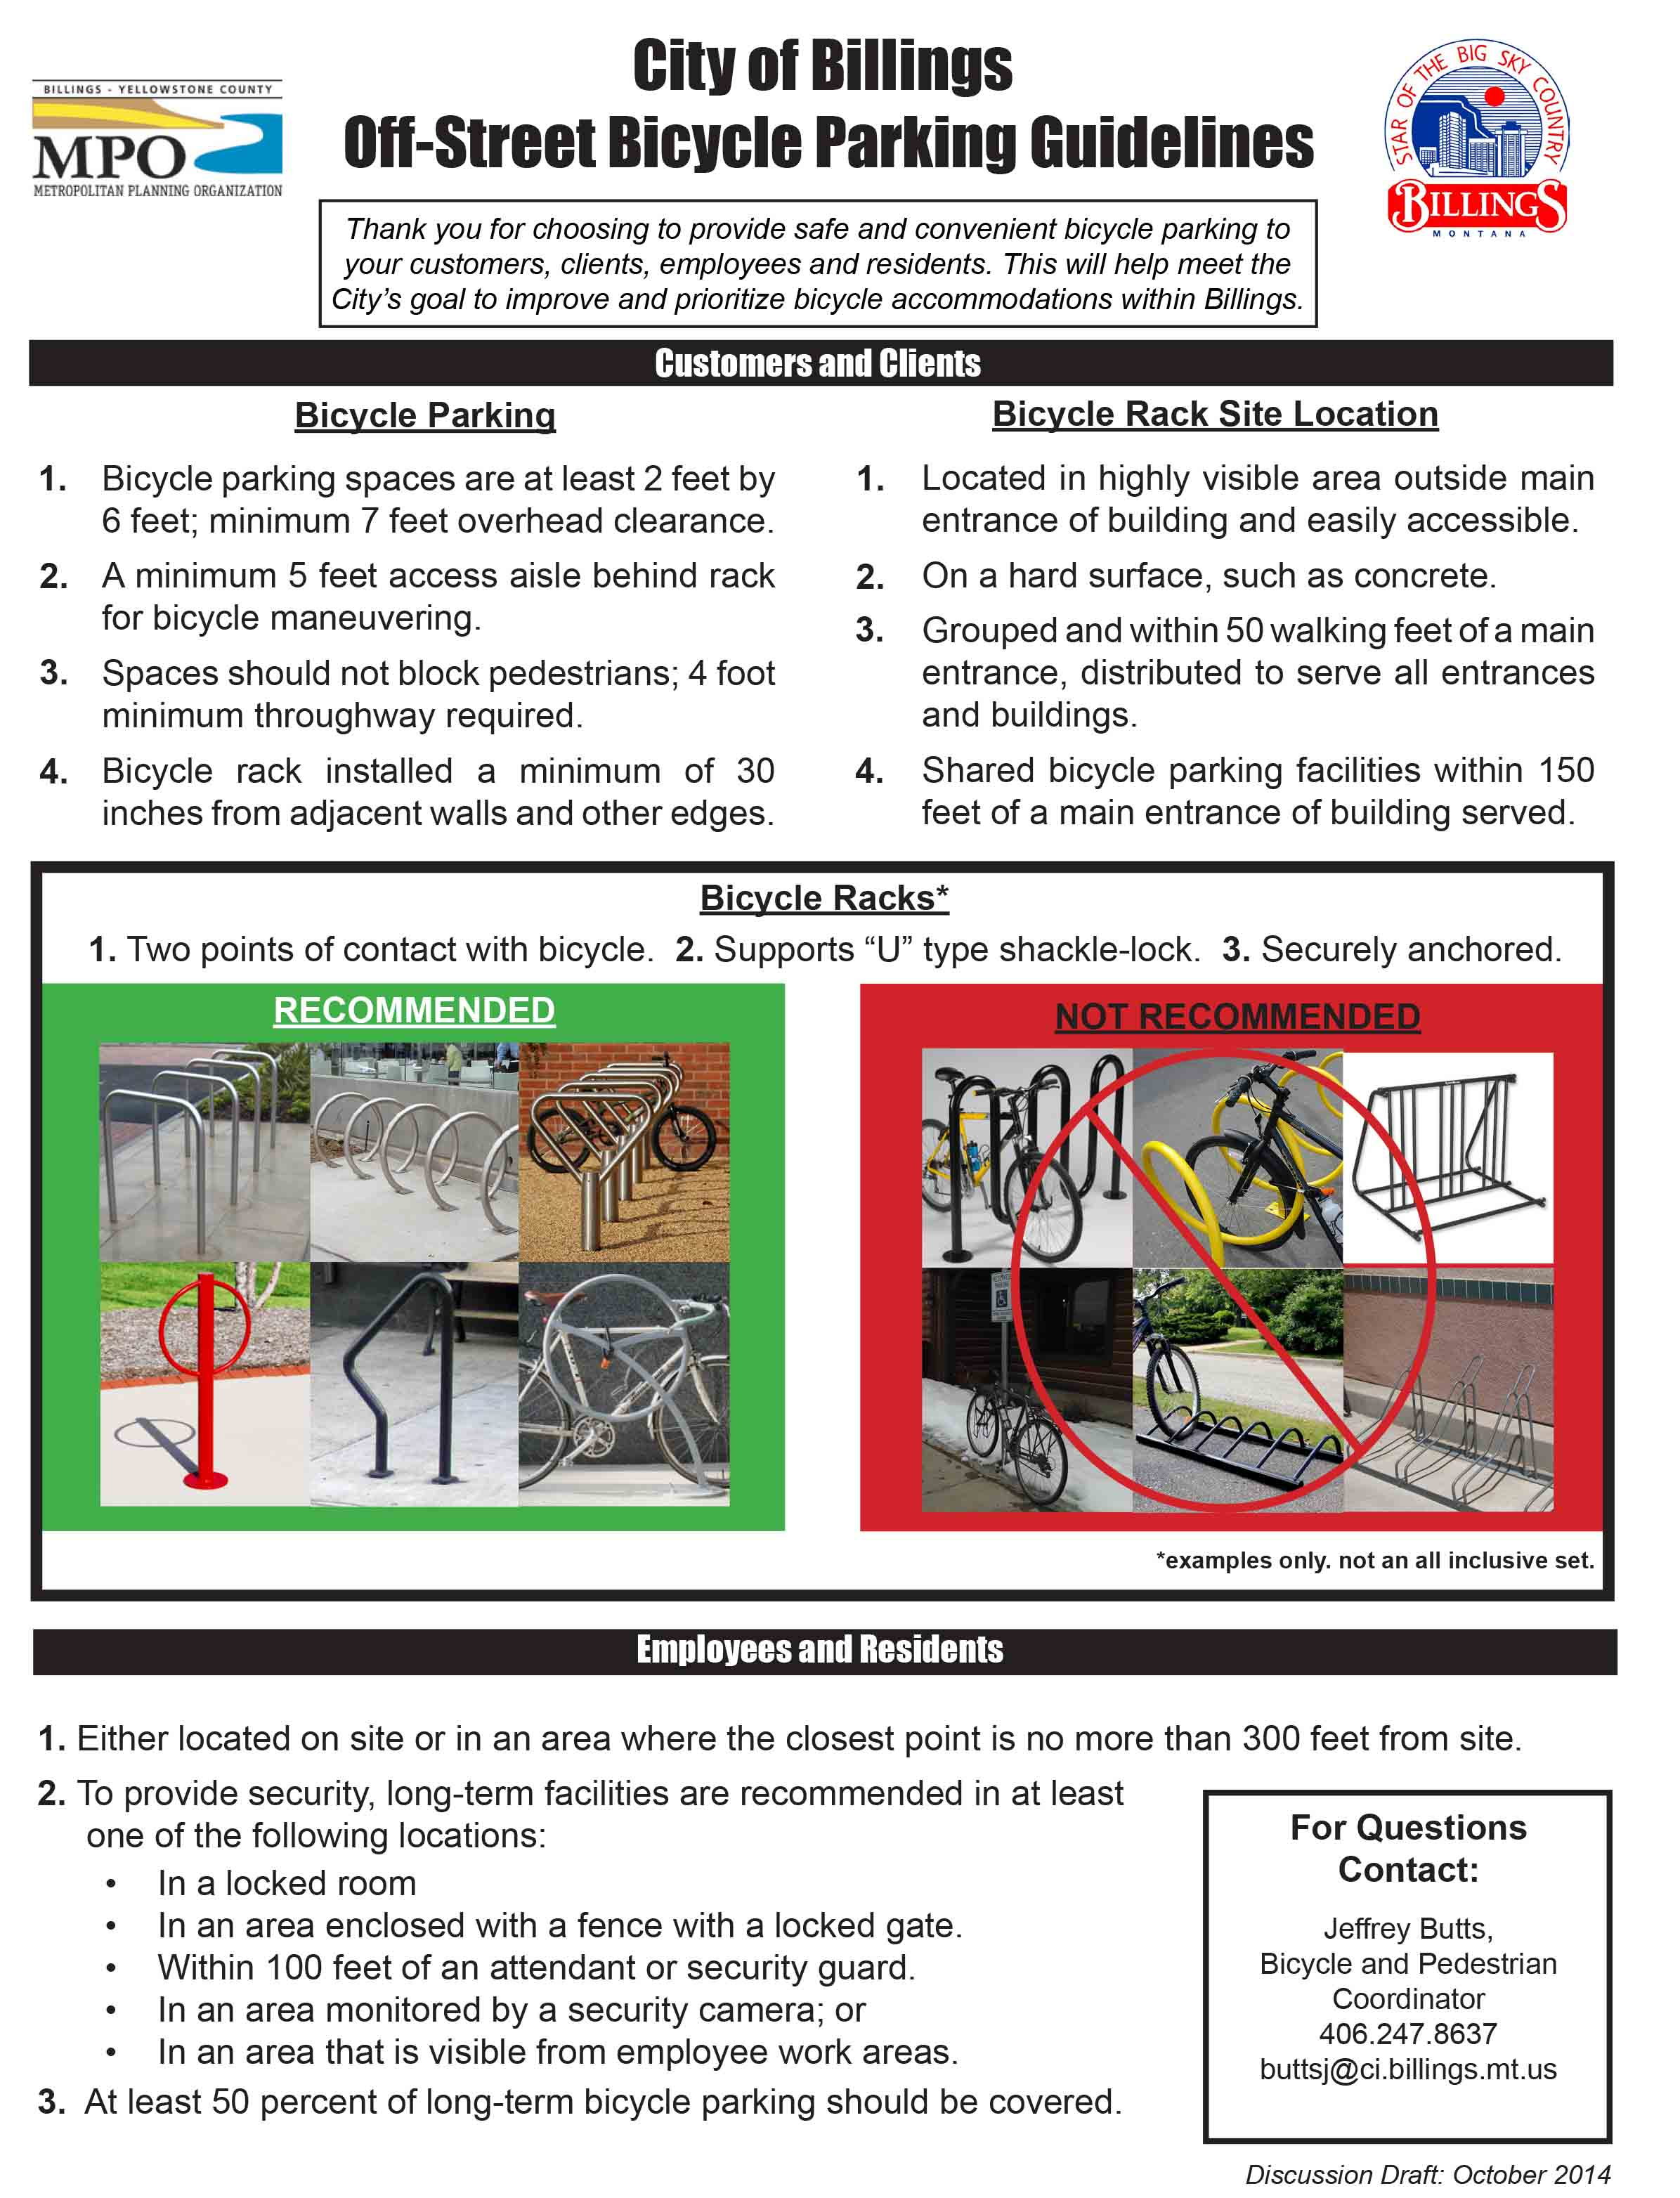 BLGS_Bicycle_Parking_Guidelines_off-street_10-2014_draft.jpg